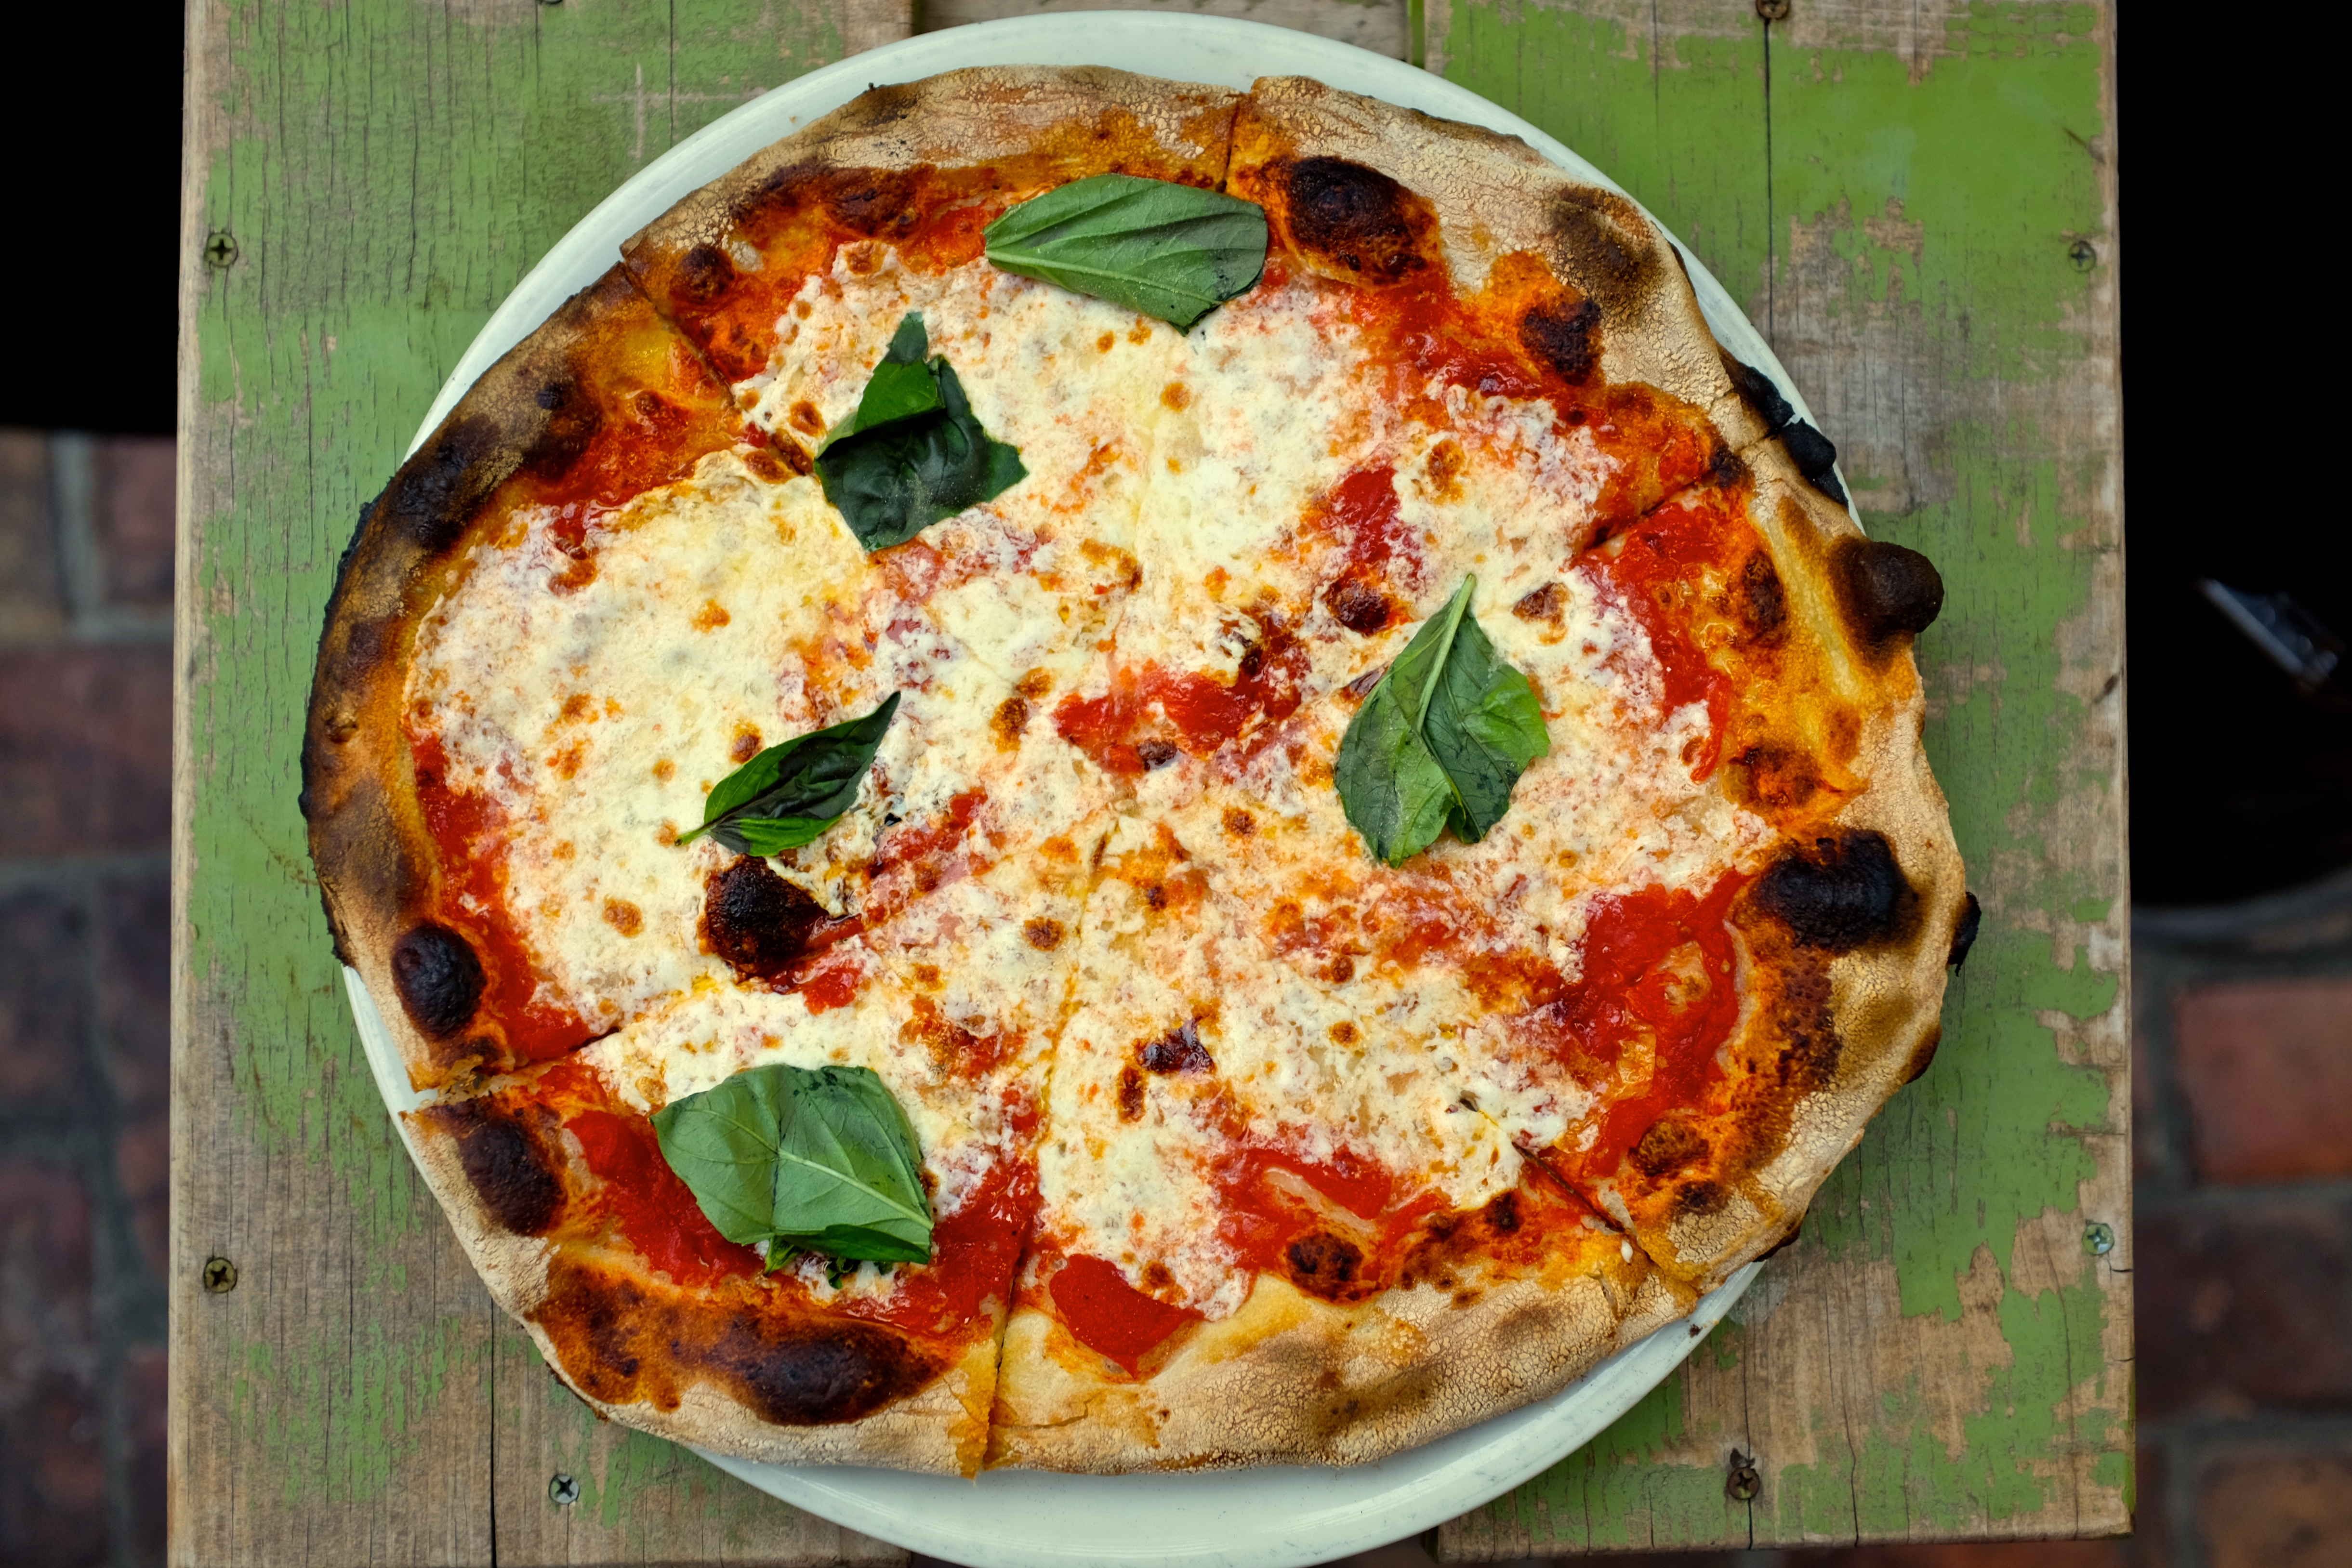 Pizza from Pizzeria Bianco